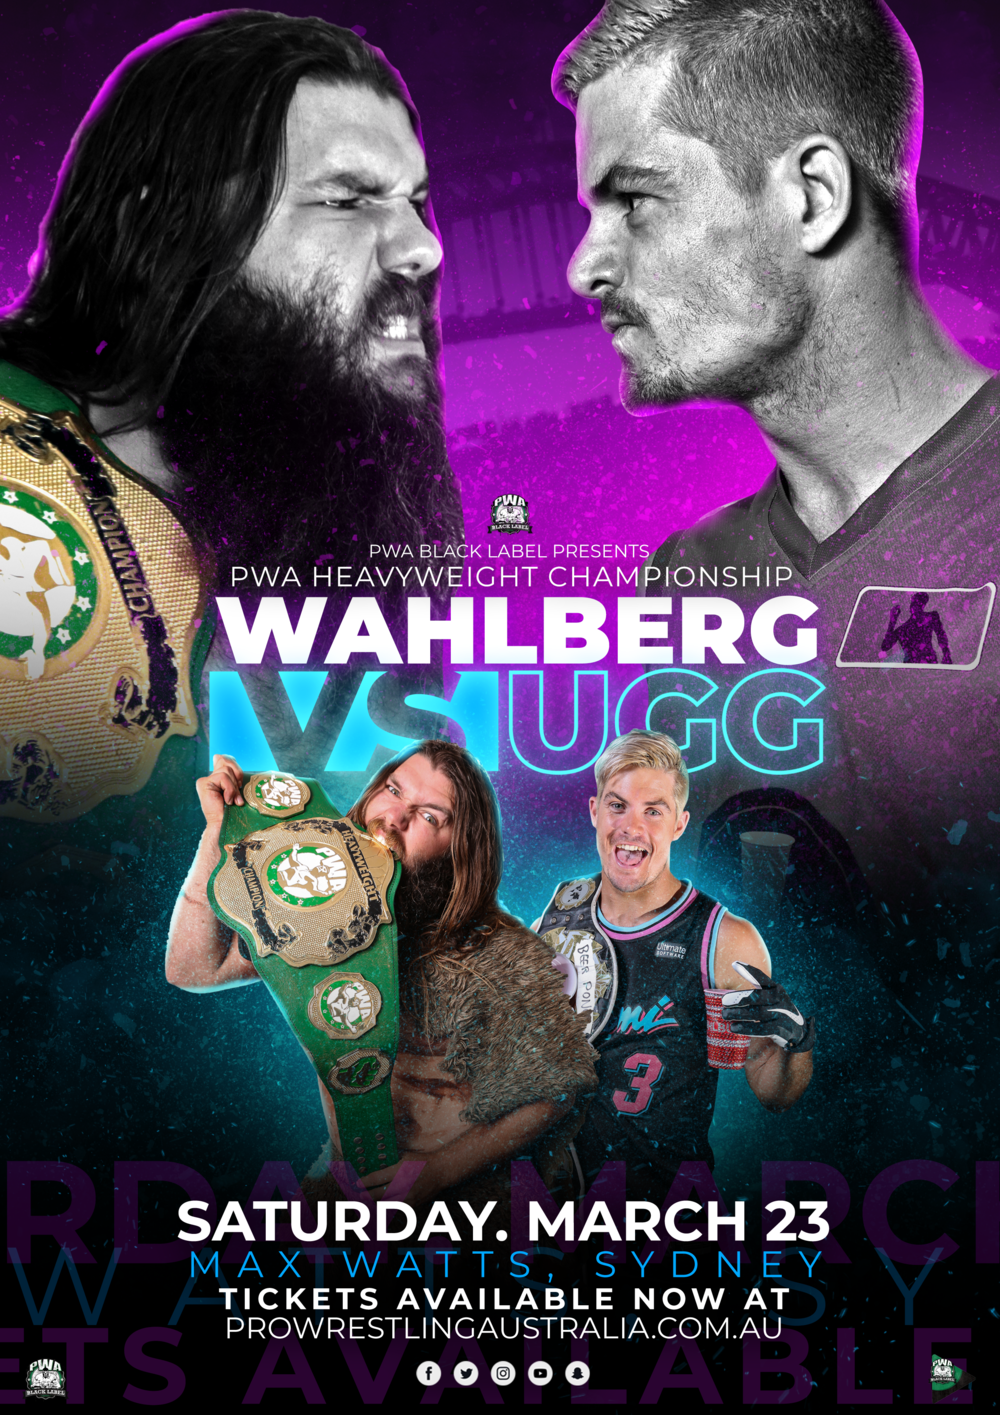 5a95a811872 LIVE SHOW REVIEW: PWA Black Label: Wahlberg vs Ugg (Max Watts ...